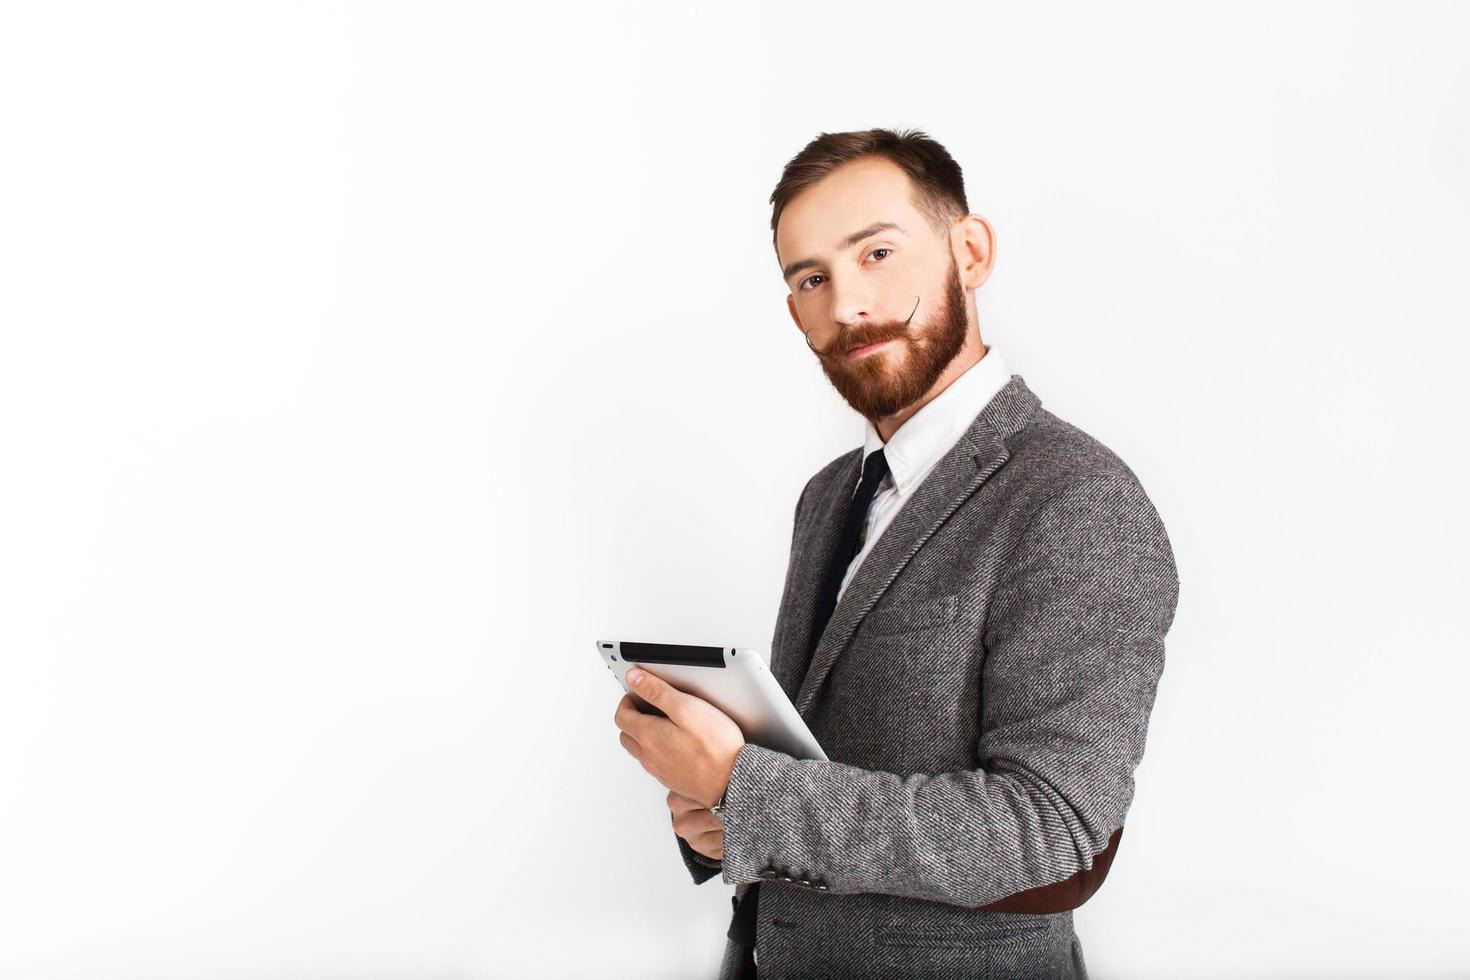 Serious man with red beard poses in gray suit with tablet in his hand photo